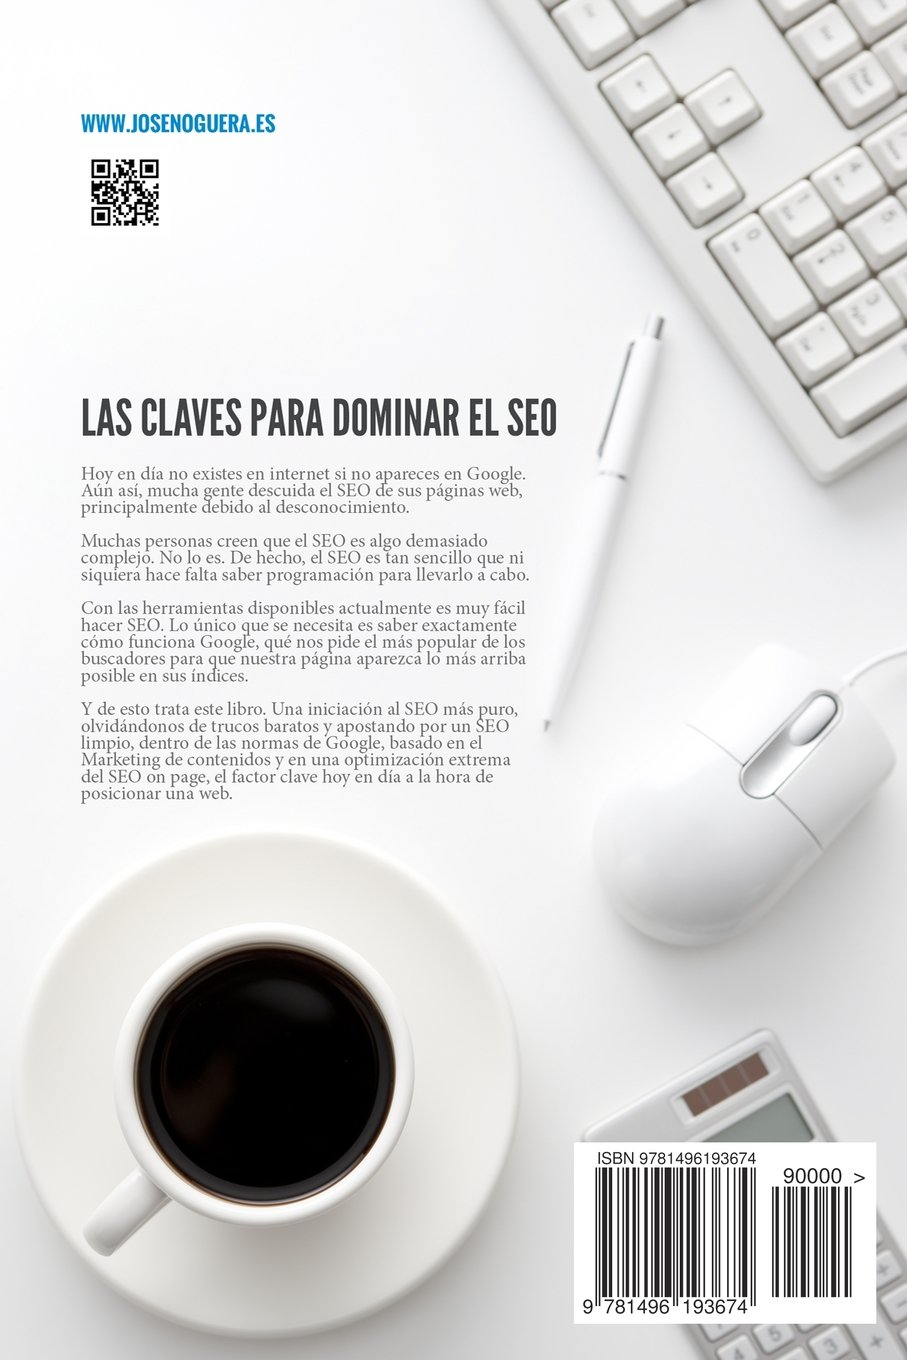 Las claves para dominar el SEO (Spanish Edition): José ...